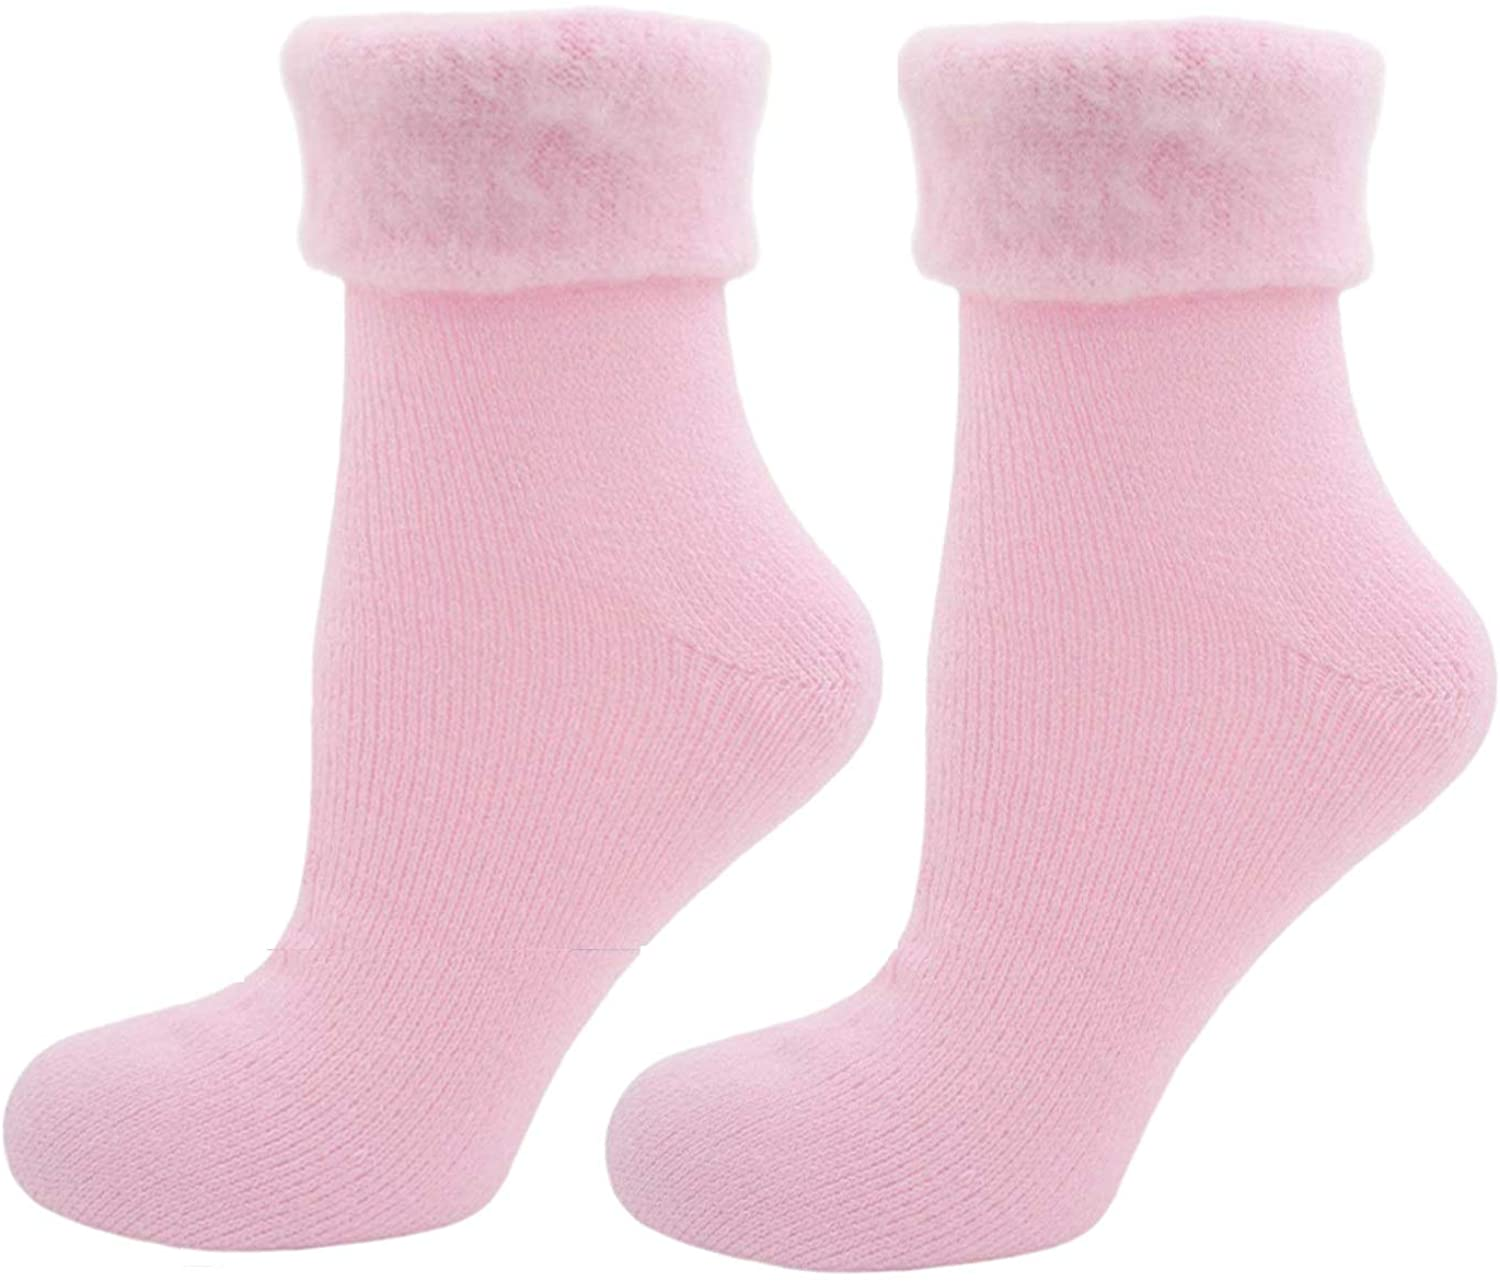 Womens/Ladies Super Soft Luxury Sleeperzzz Brushed Warm Sleep Bed Socks